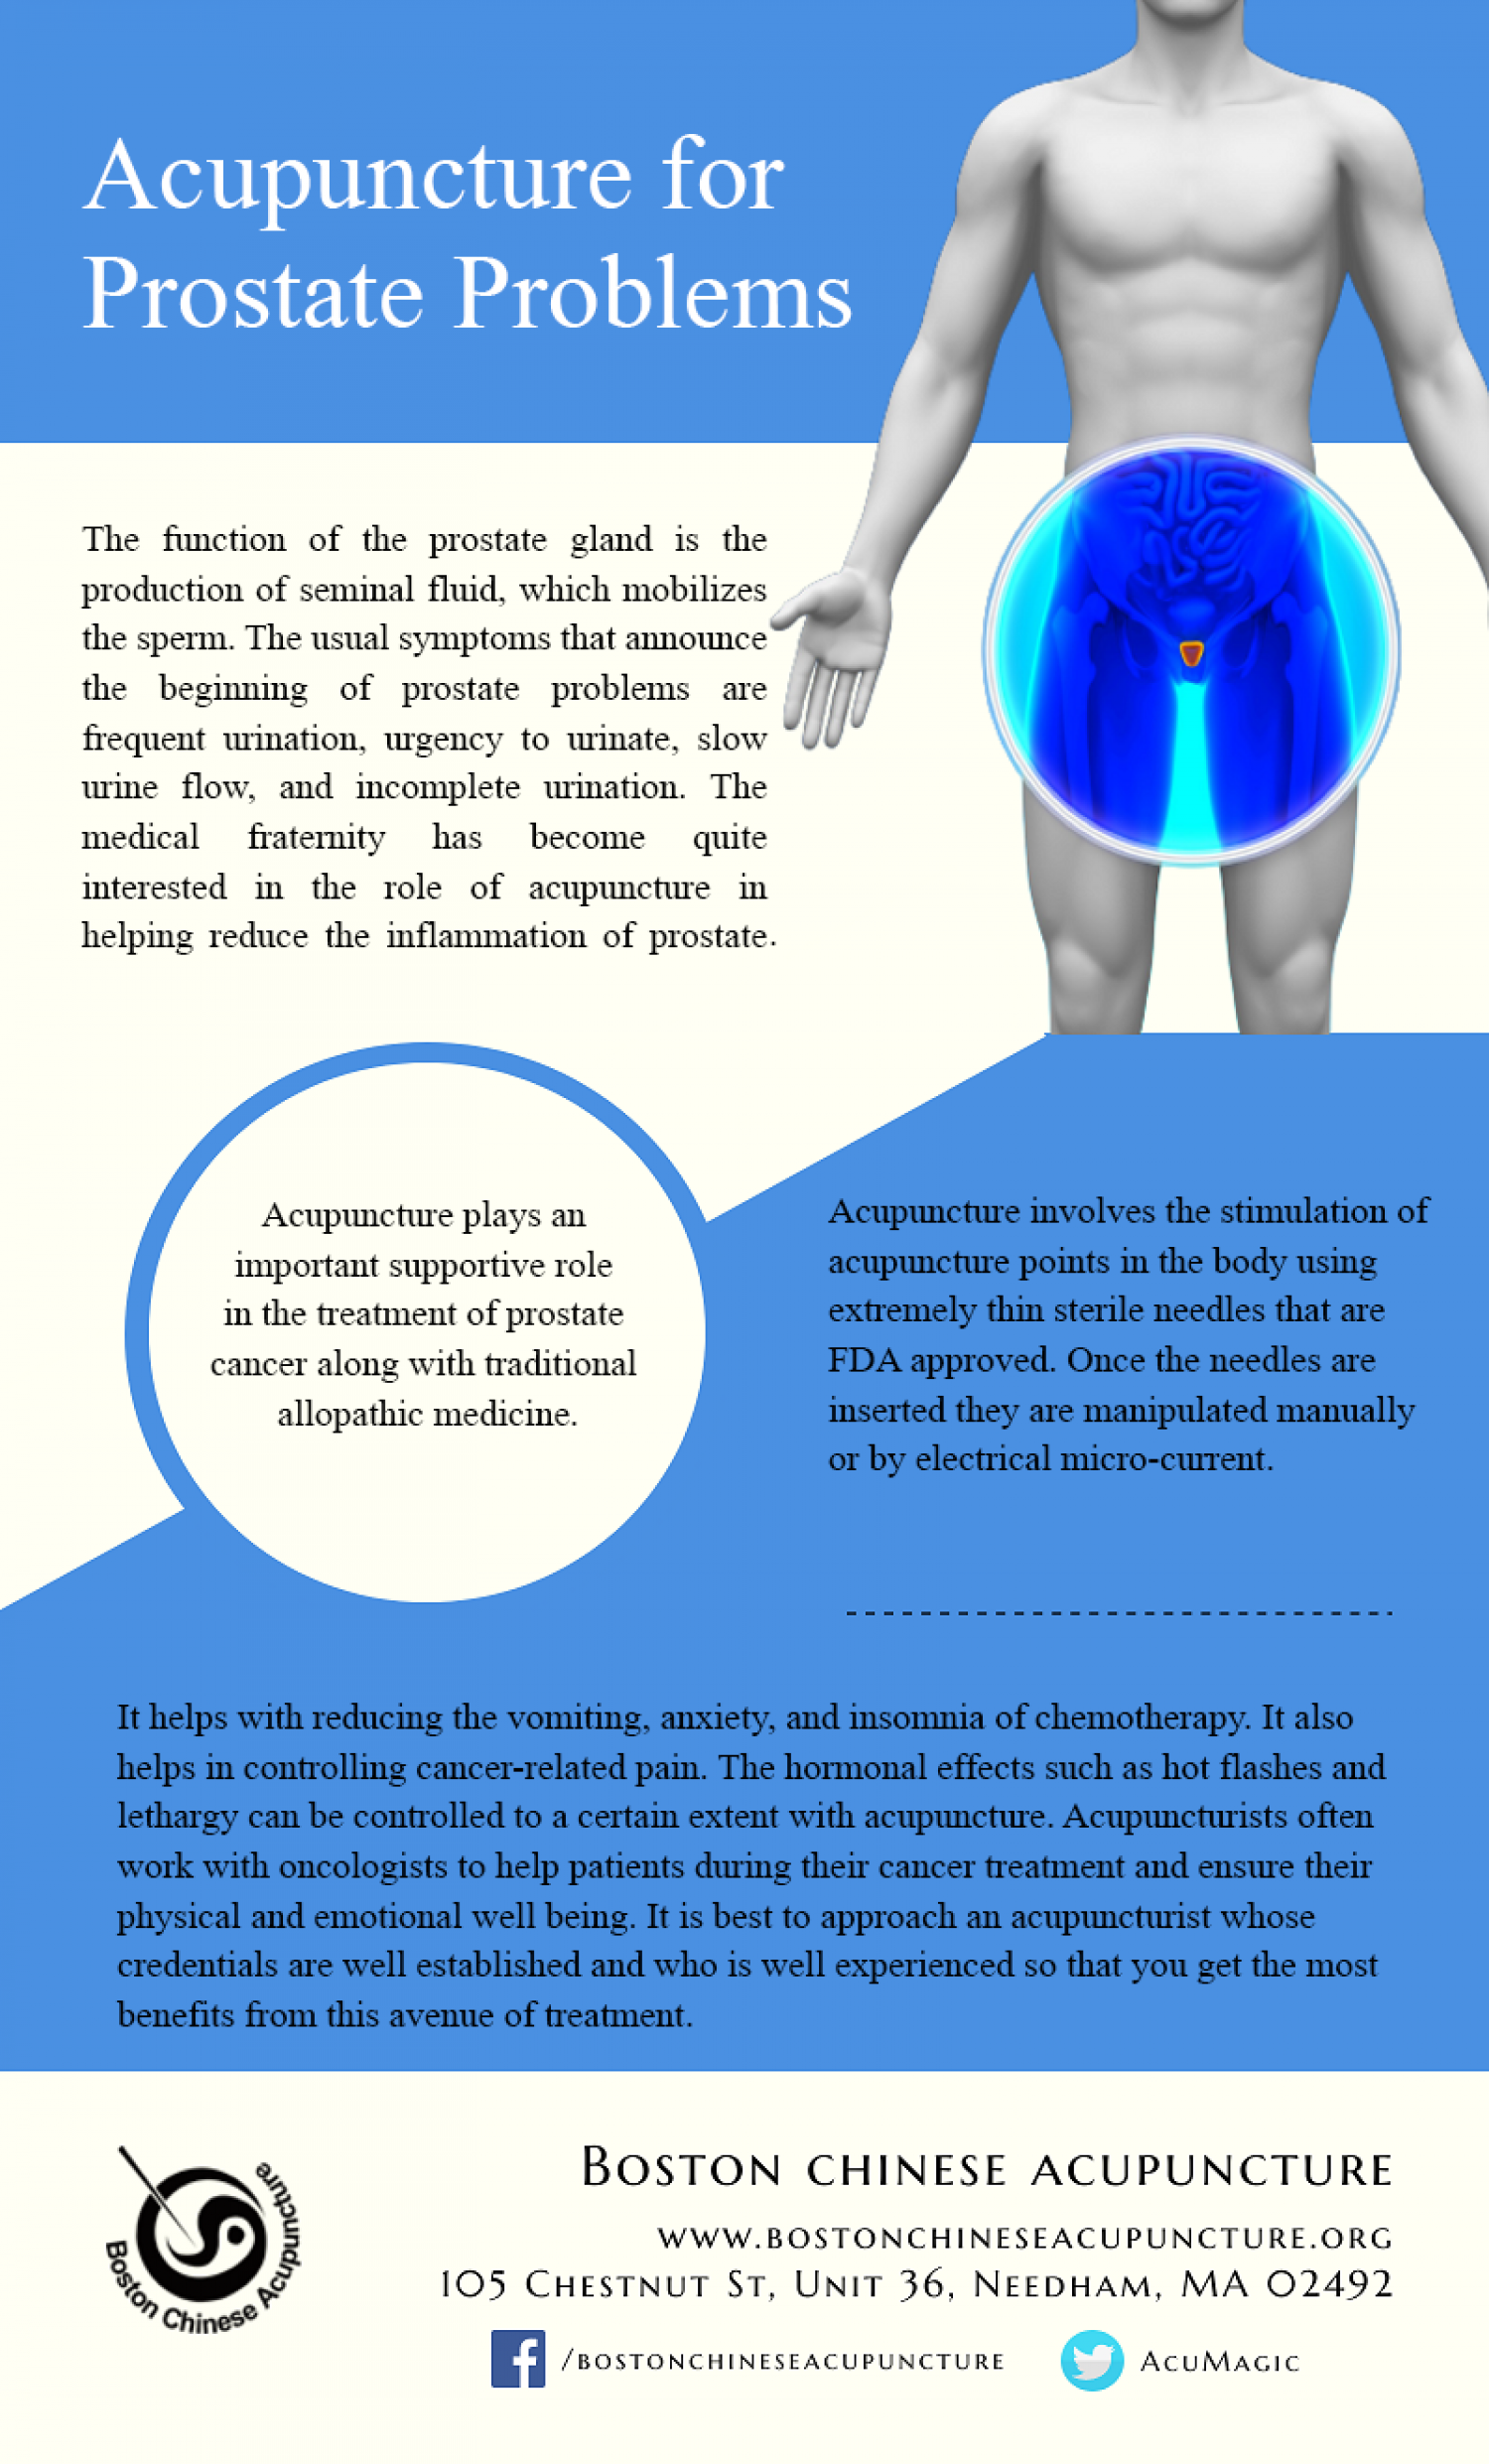 Acupuncture For Prostate Problems Infographic